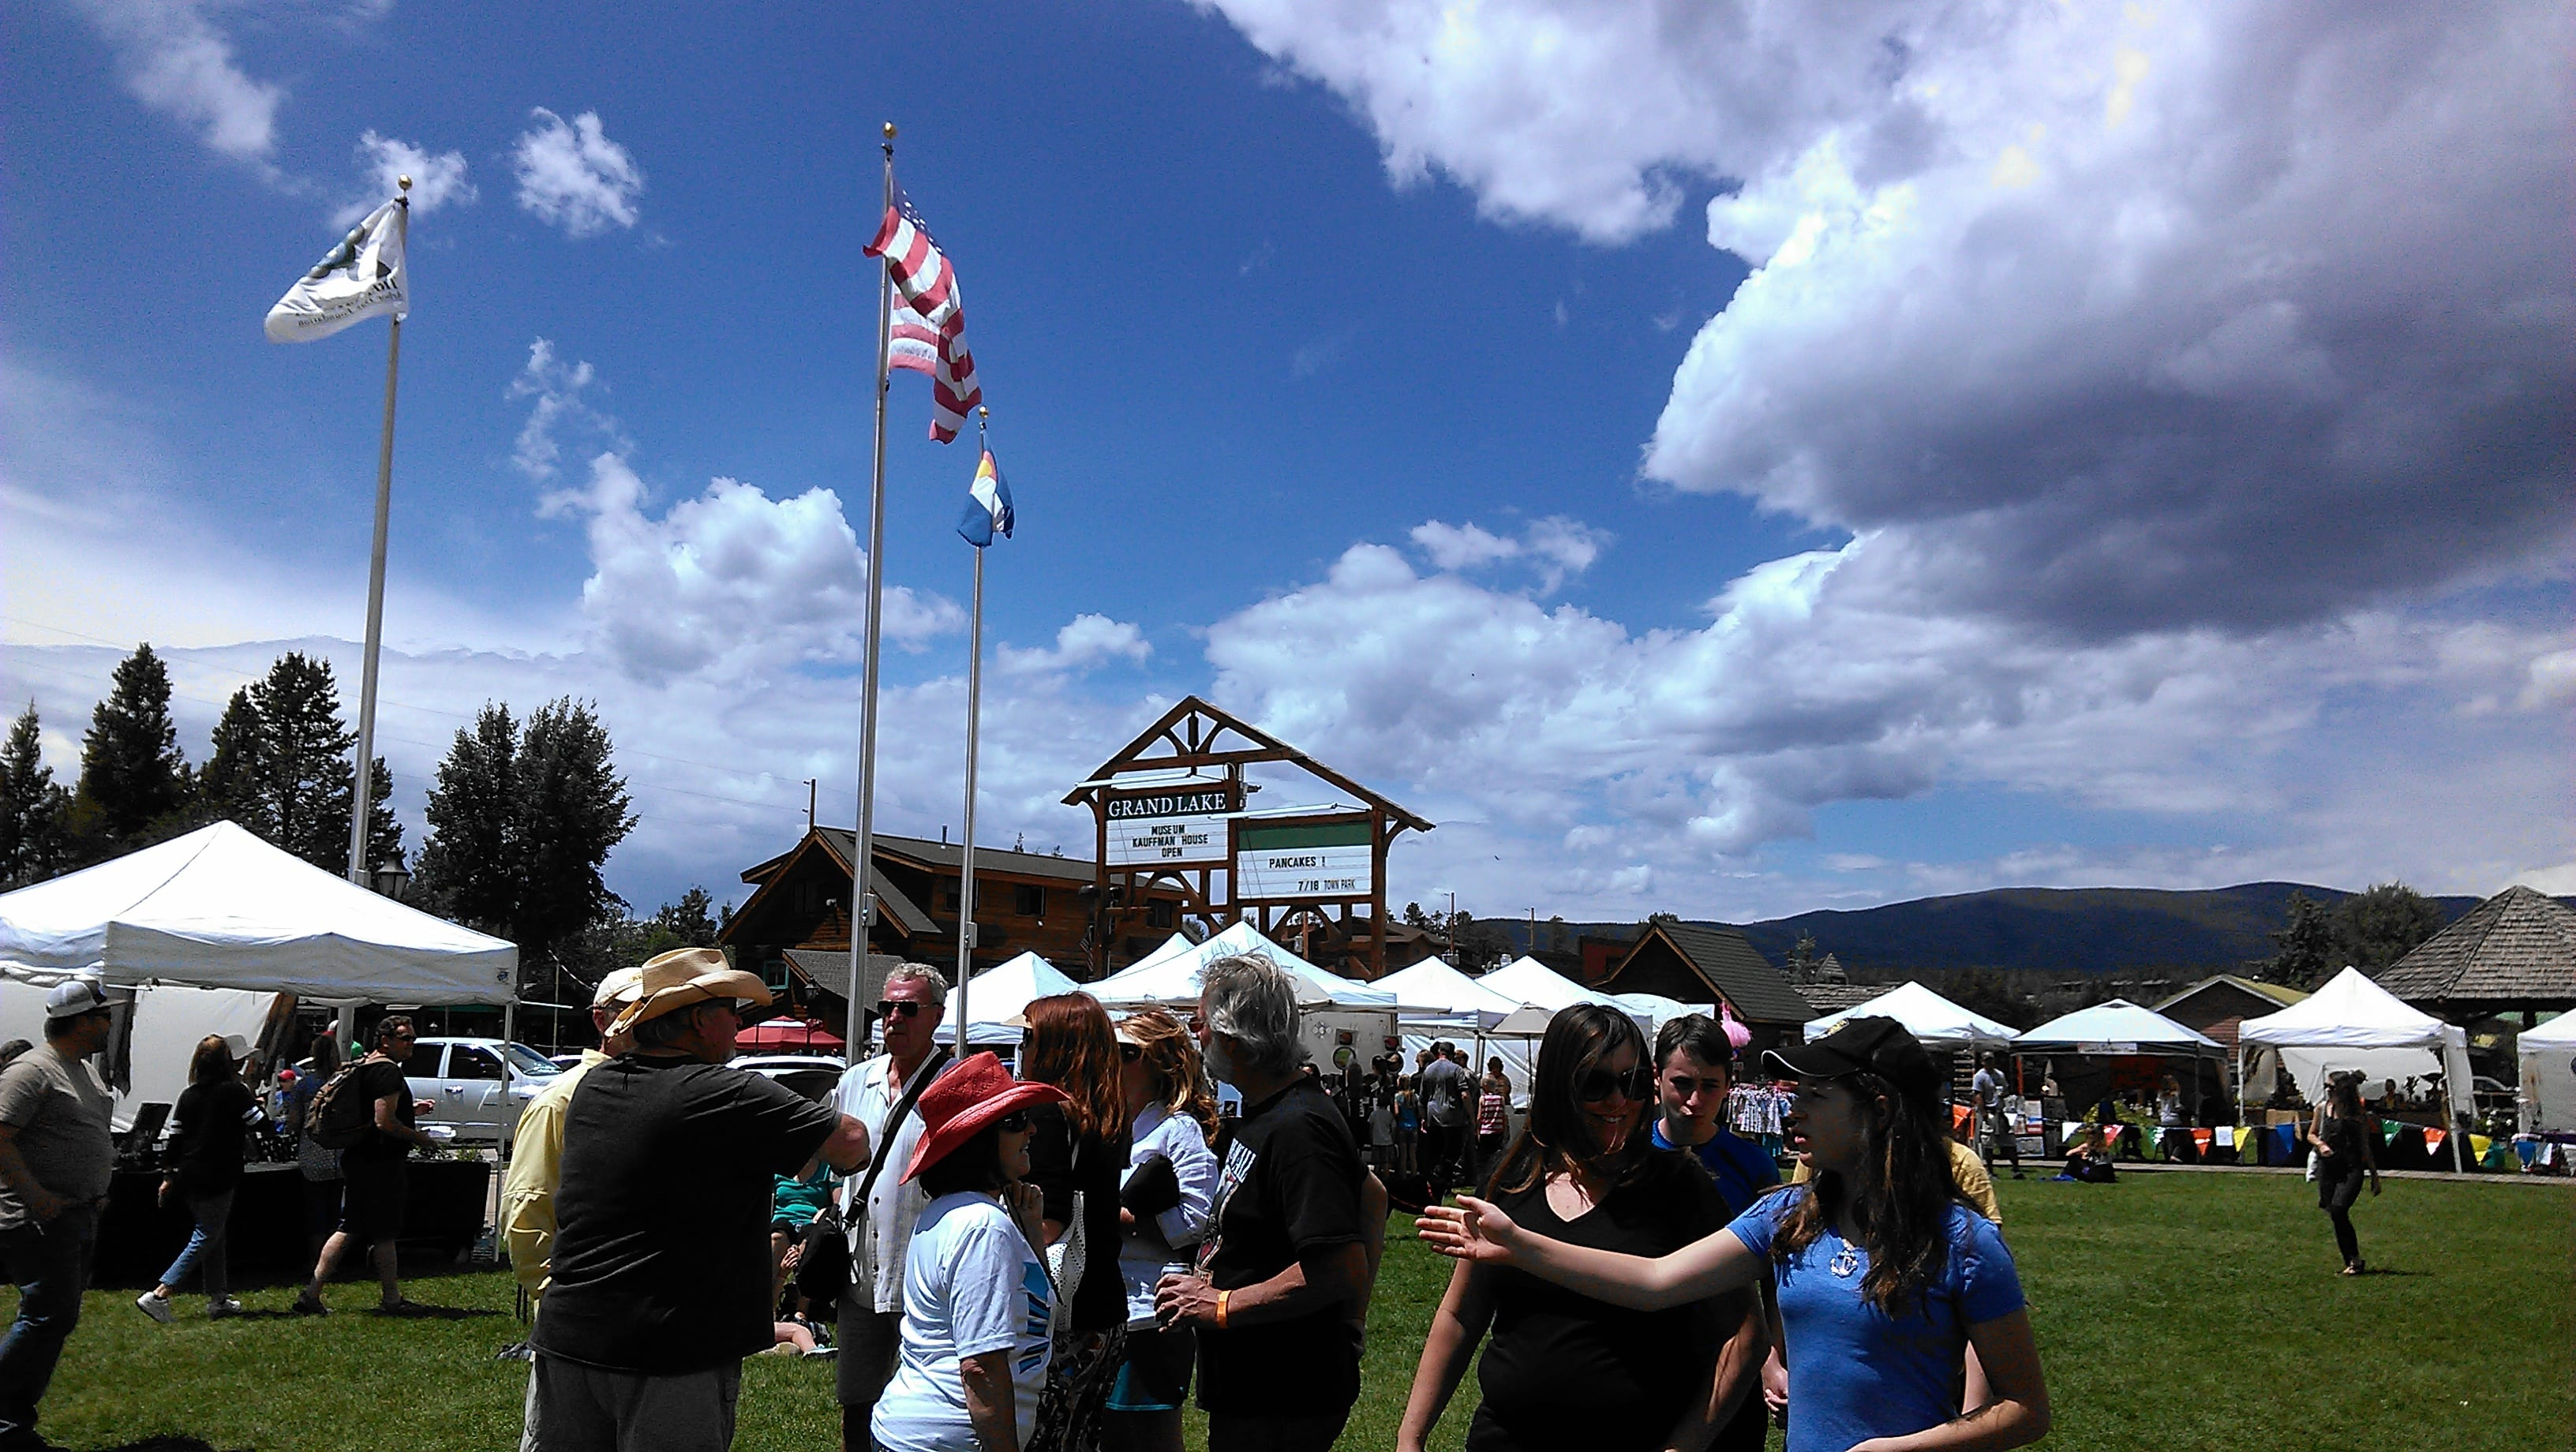 Western arts and crafts - Don T Miss The Opportunity To Shop For One Of A Kind Gifts Arts Crafts Festivals In Grand Lake Colorado